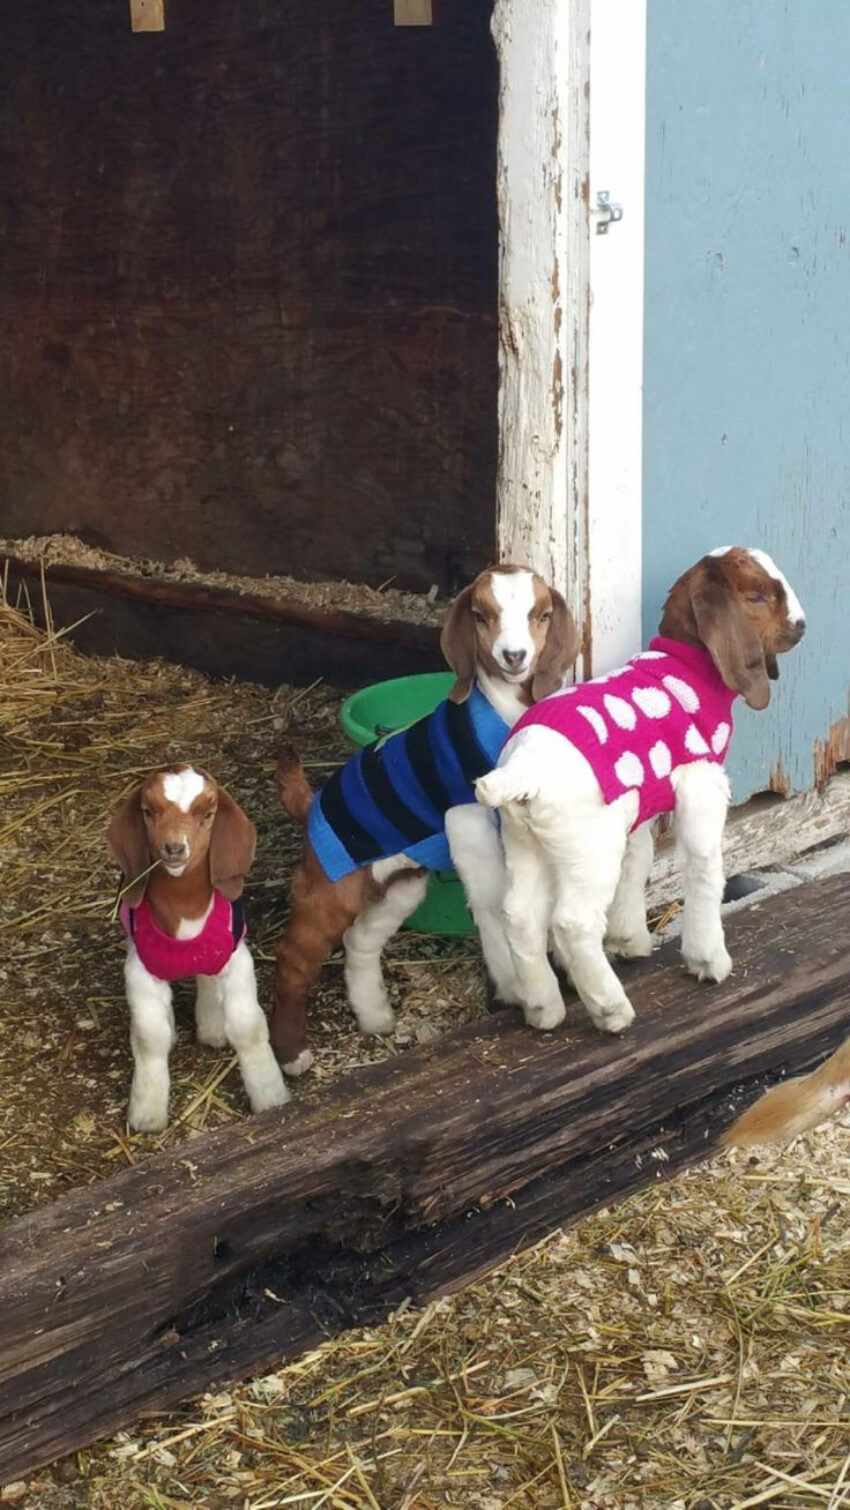 Even goats need to stay warm and comfy.